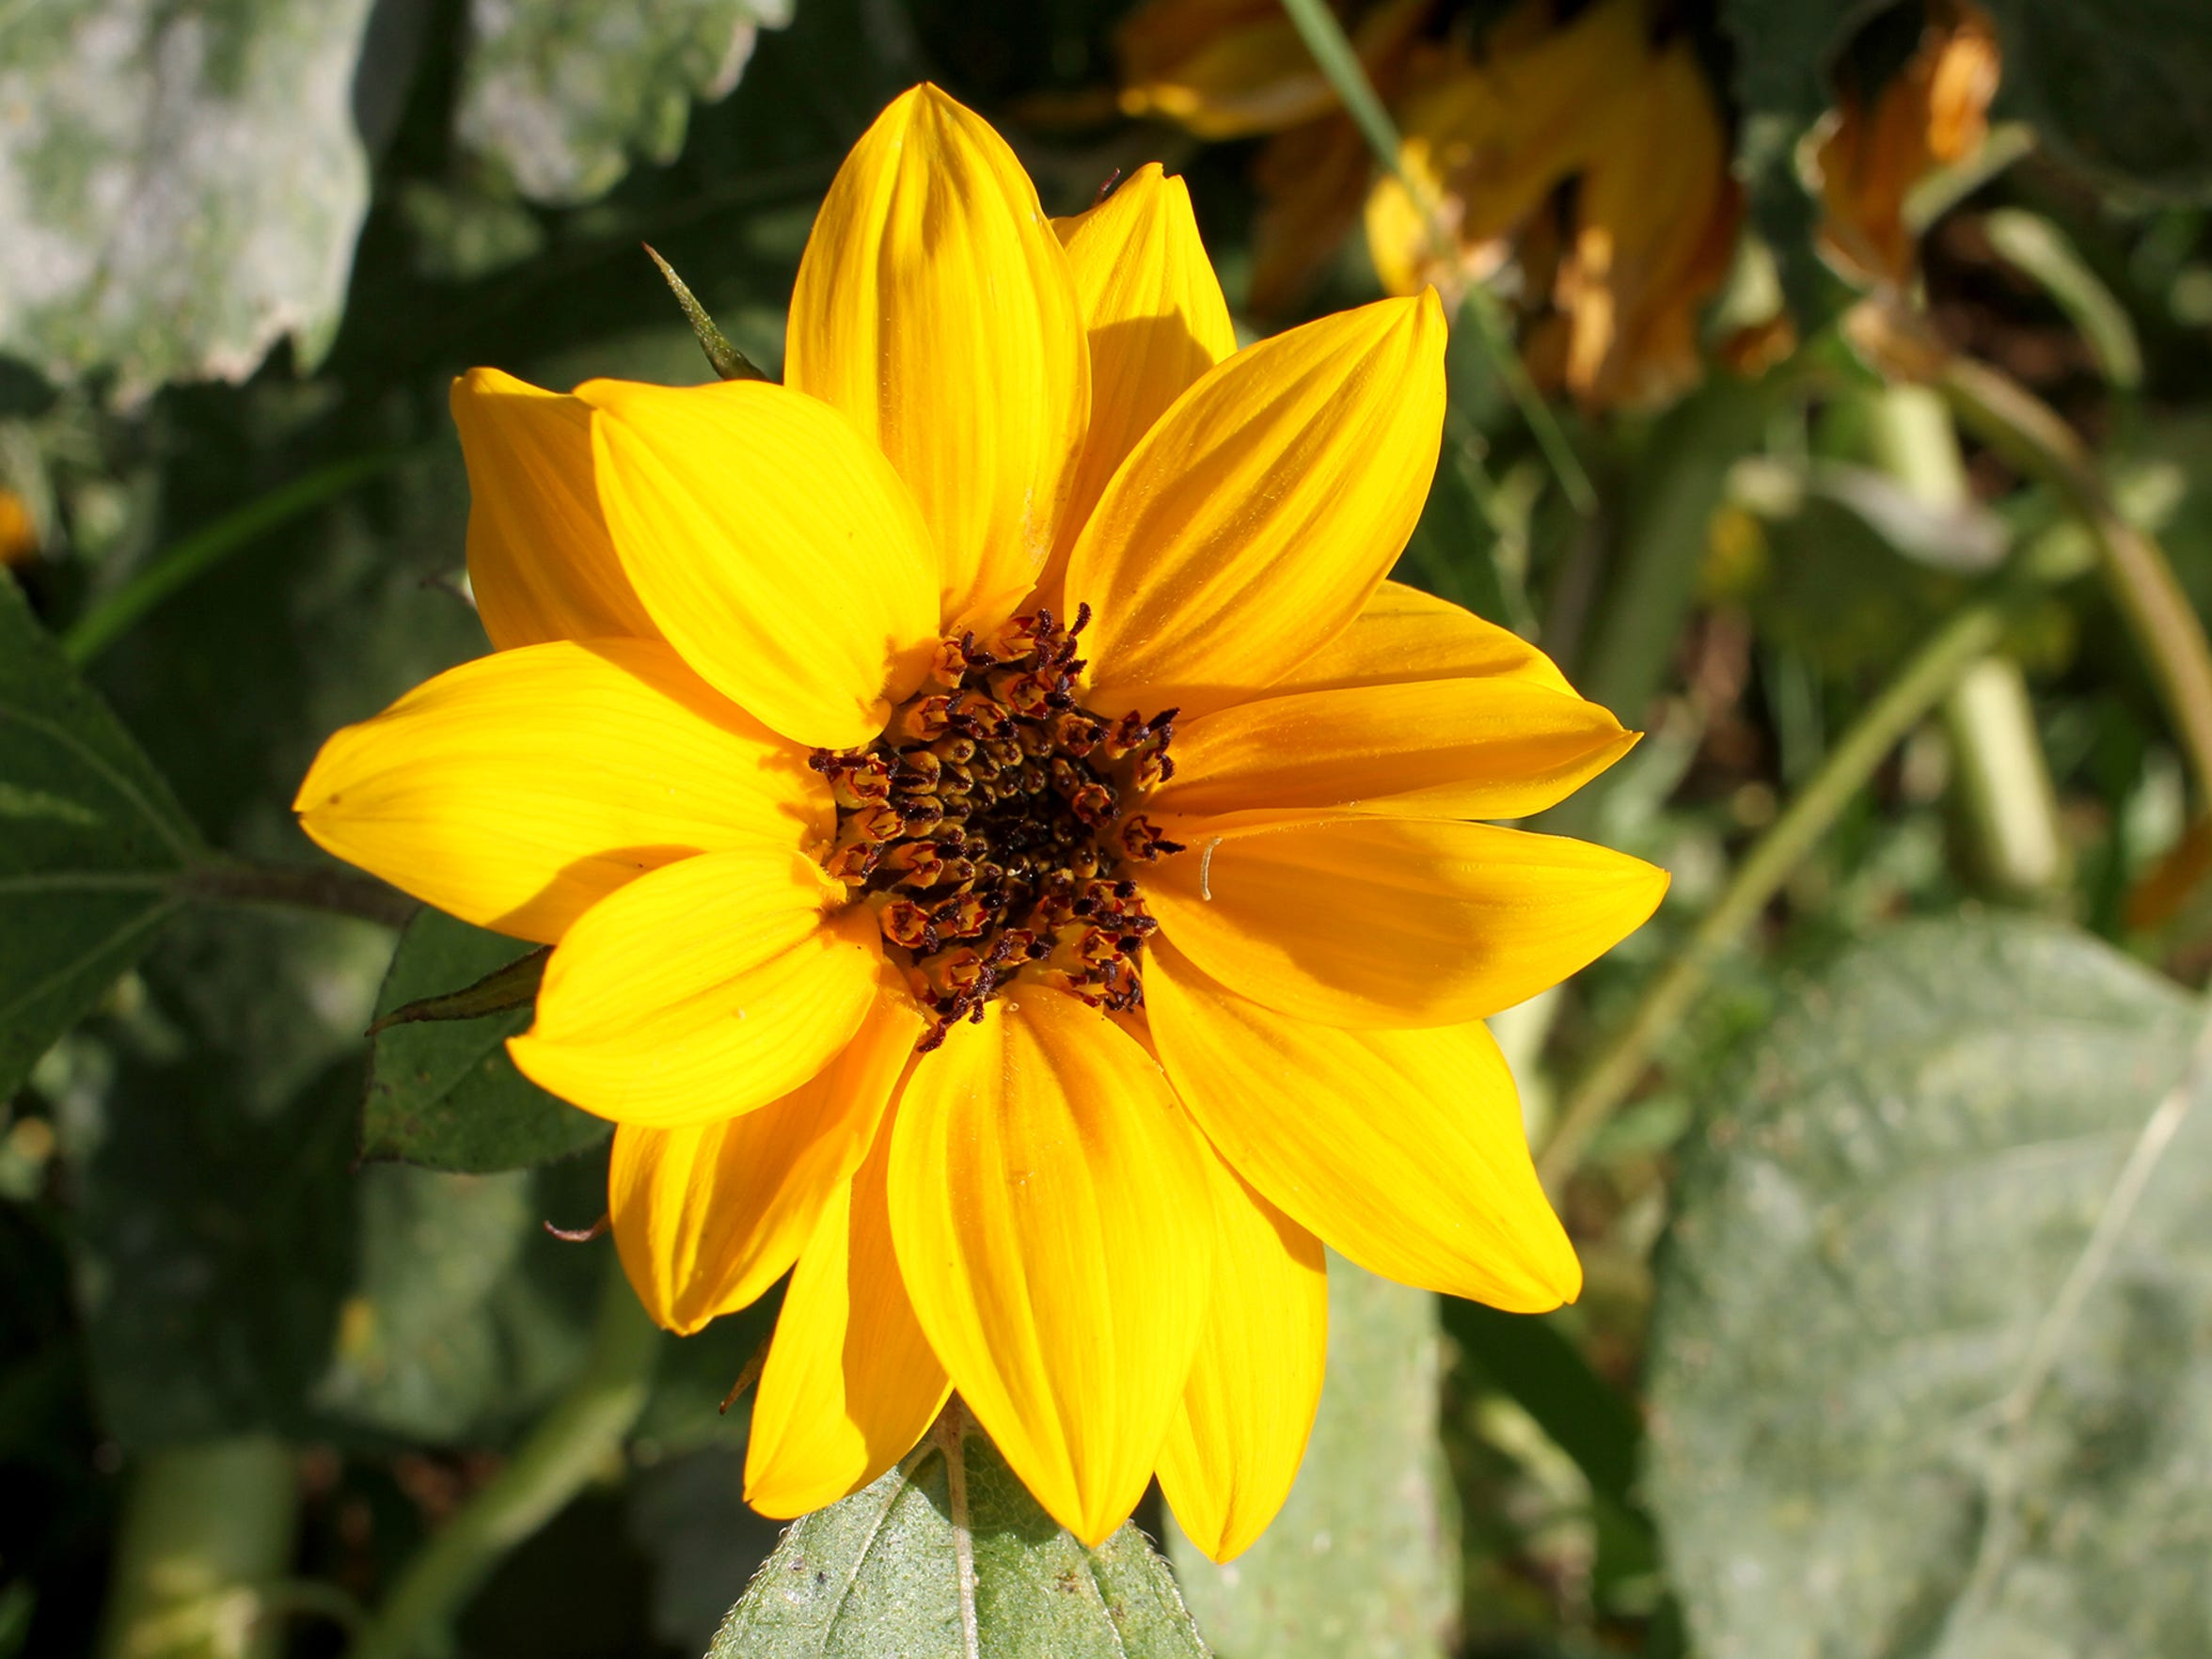 Gilbert Creek Gardens in Burkburnett is a sustainable flower farm where you can find such blooms as sunflowers, sweet peas, zinnia and bachelor buttons, to name a few.